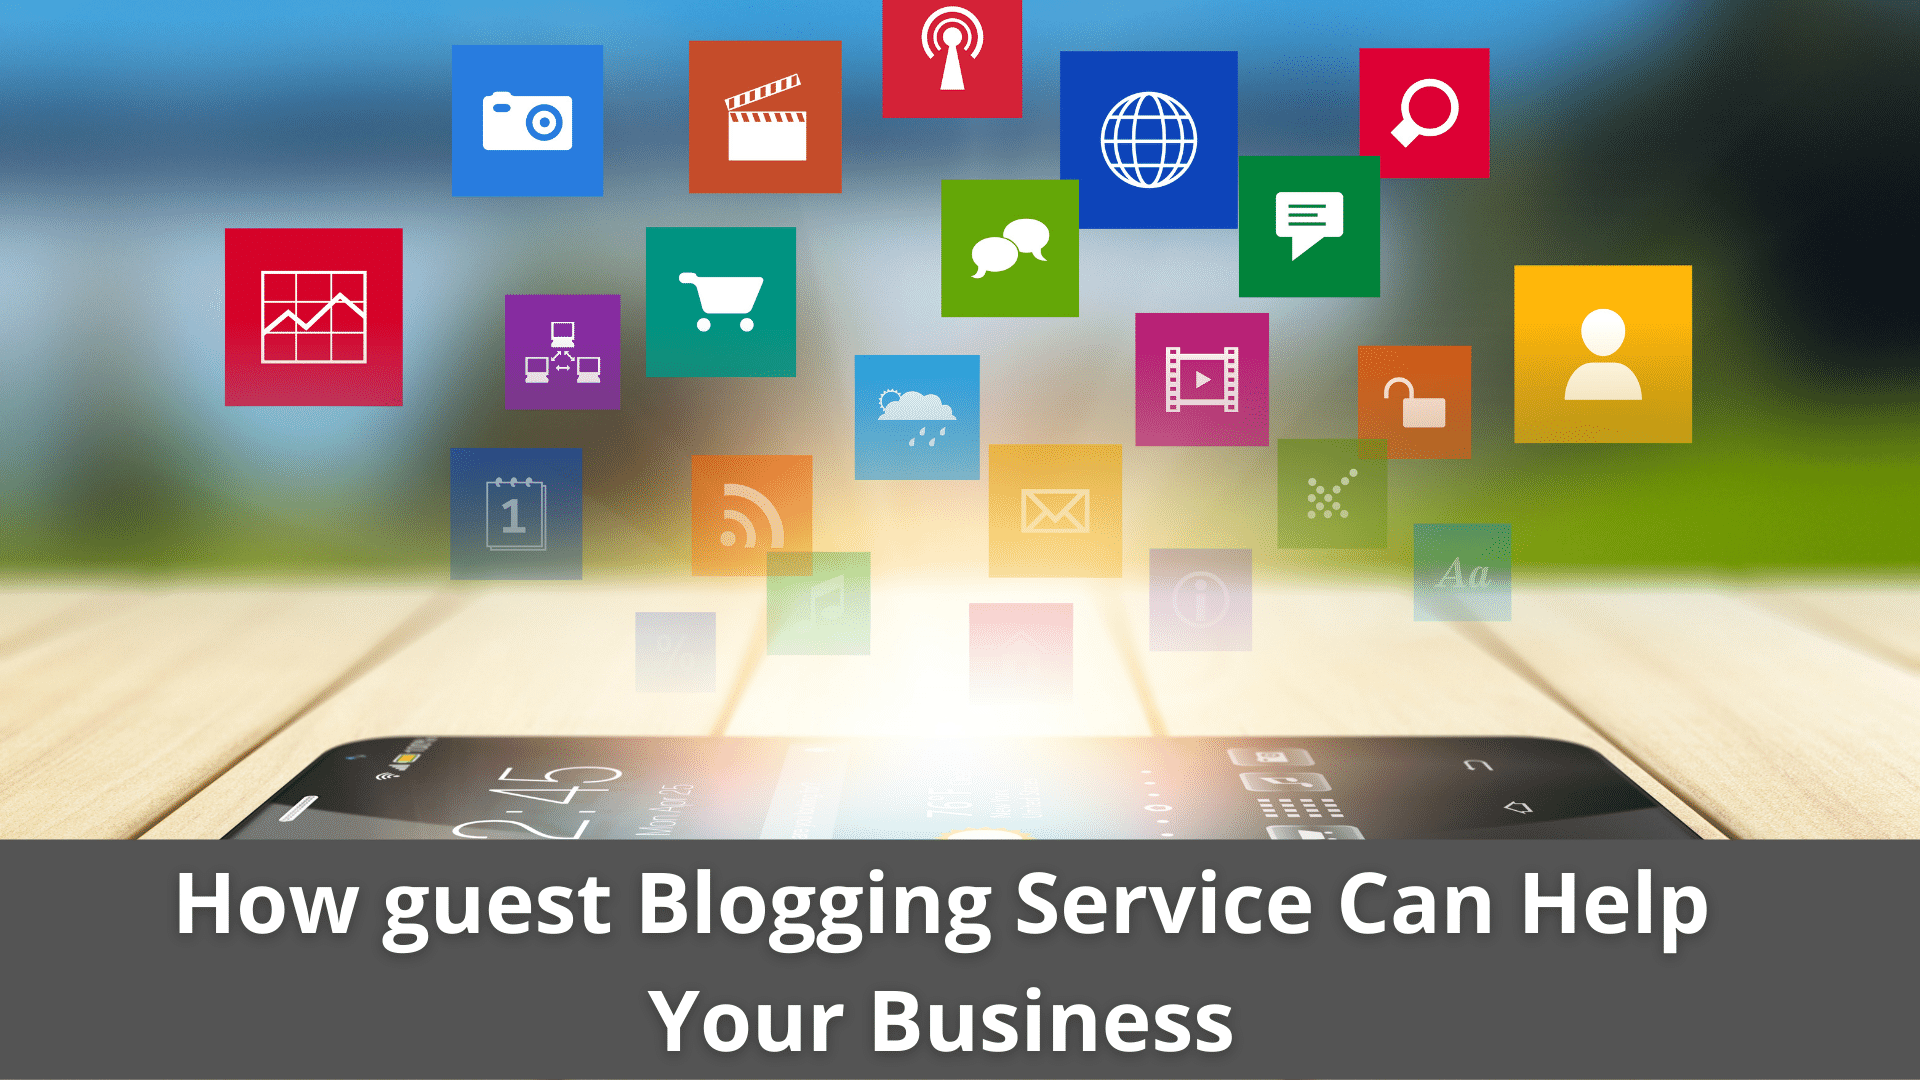 How guest Blogging Service Can Help Your Business 41